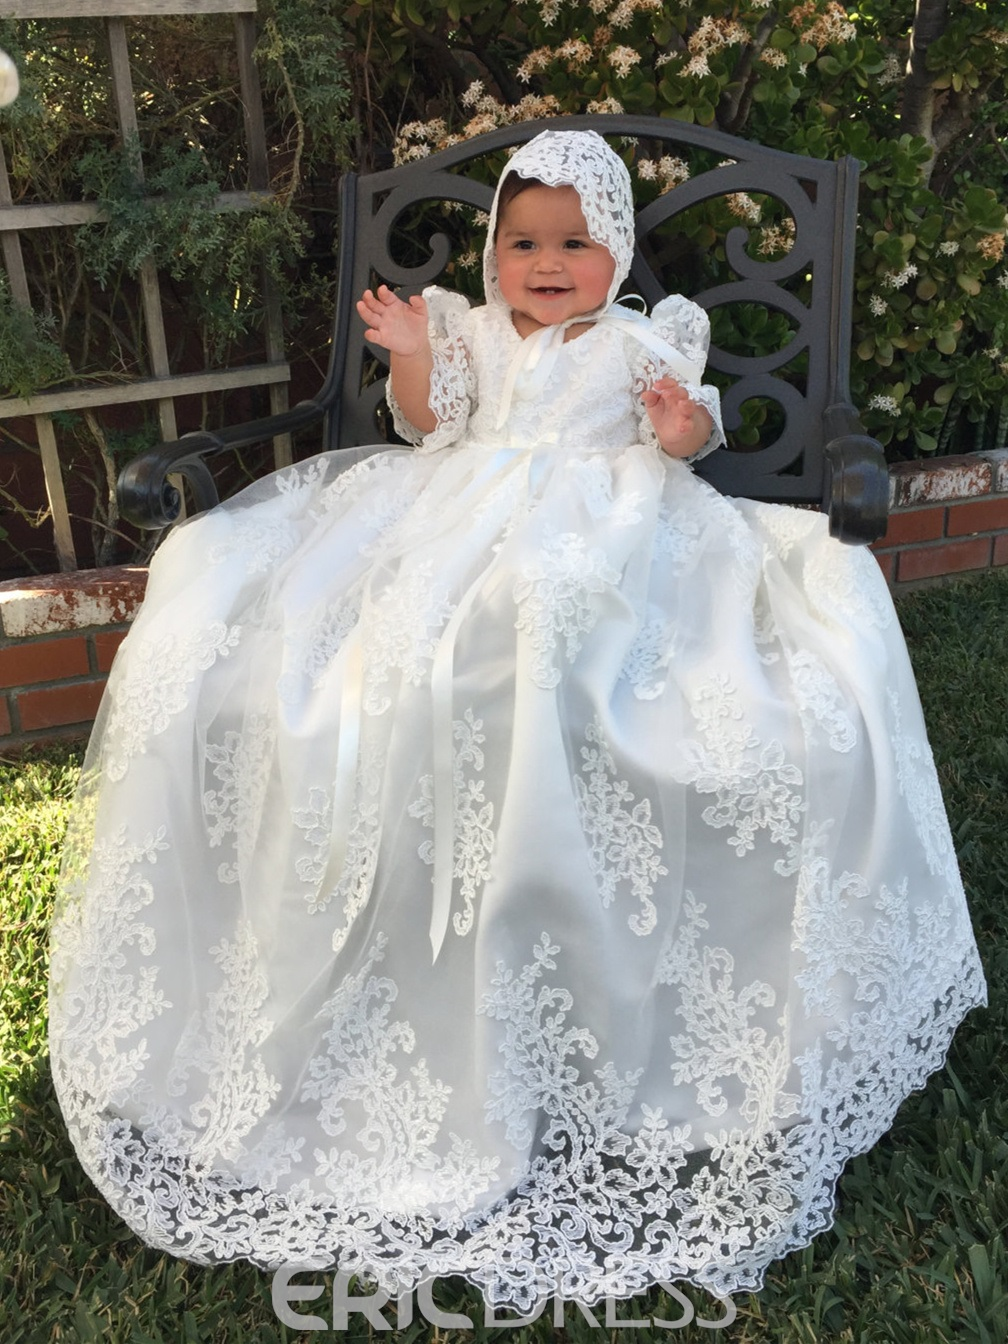 Christening Gowns for Baby Girls - Ericdress.com